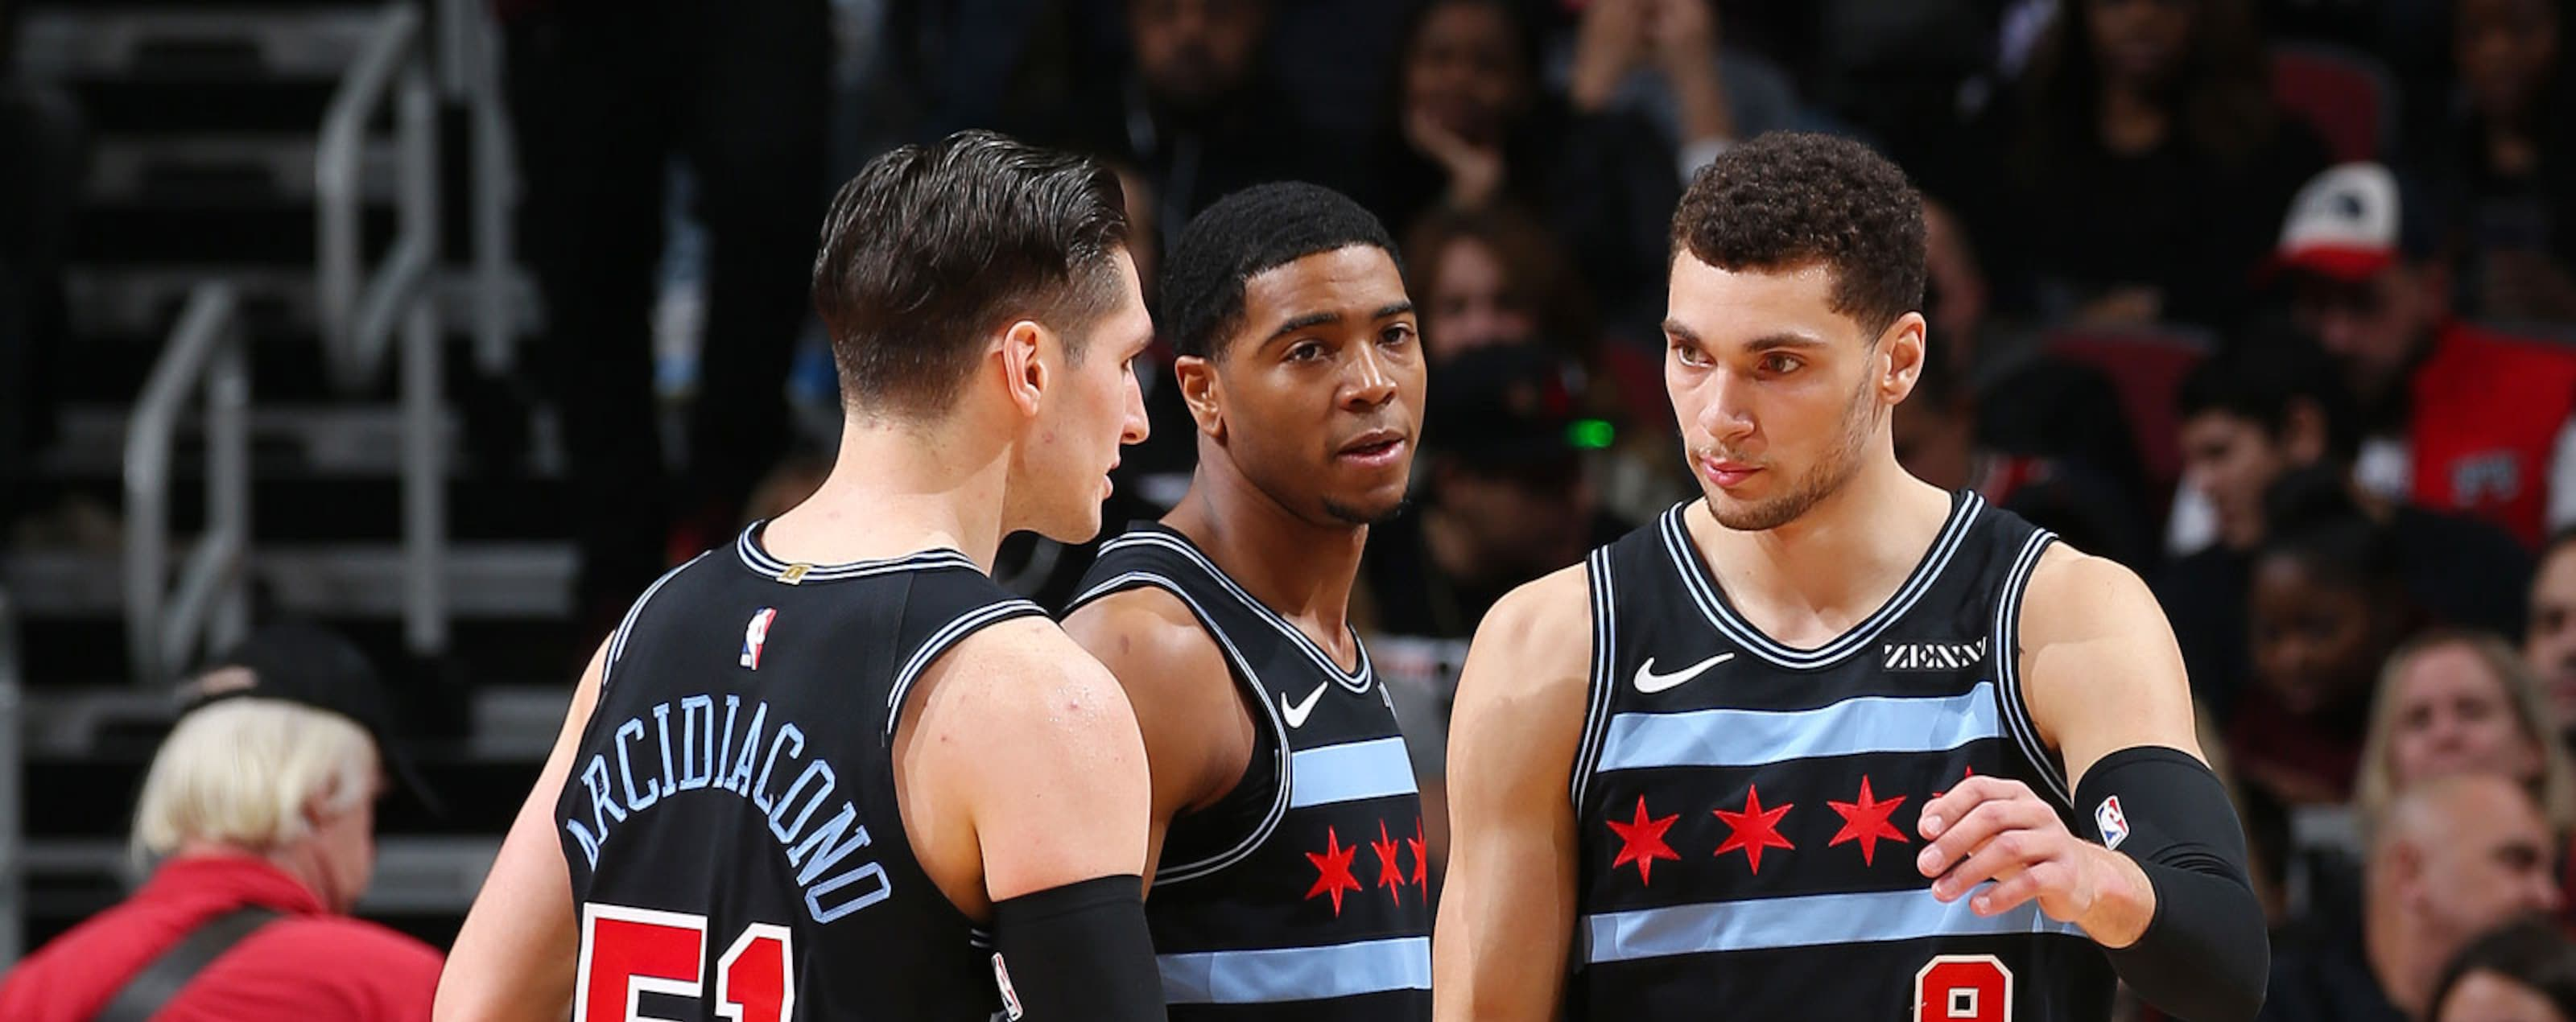 Zach LaVine #8 celebrates with Ryan Arcidiacono #51 of the Chicago Bulls during the game against the Minnesota Timberwolves on December 26, 2018 at the United Center in Chicago, Illinois.